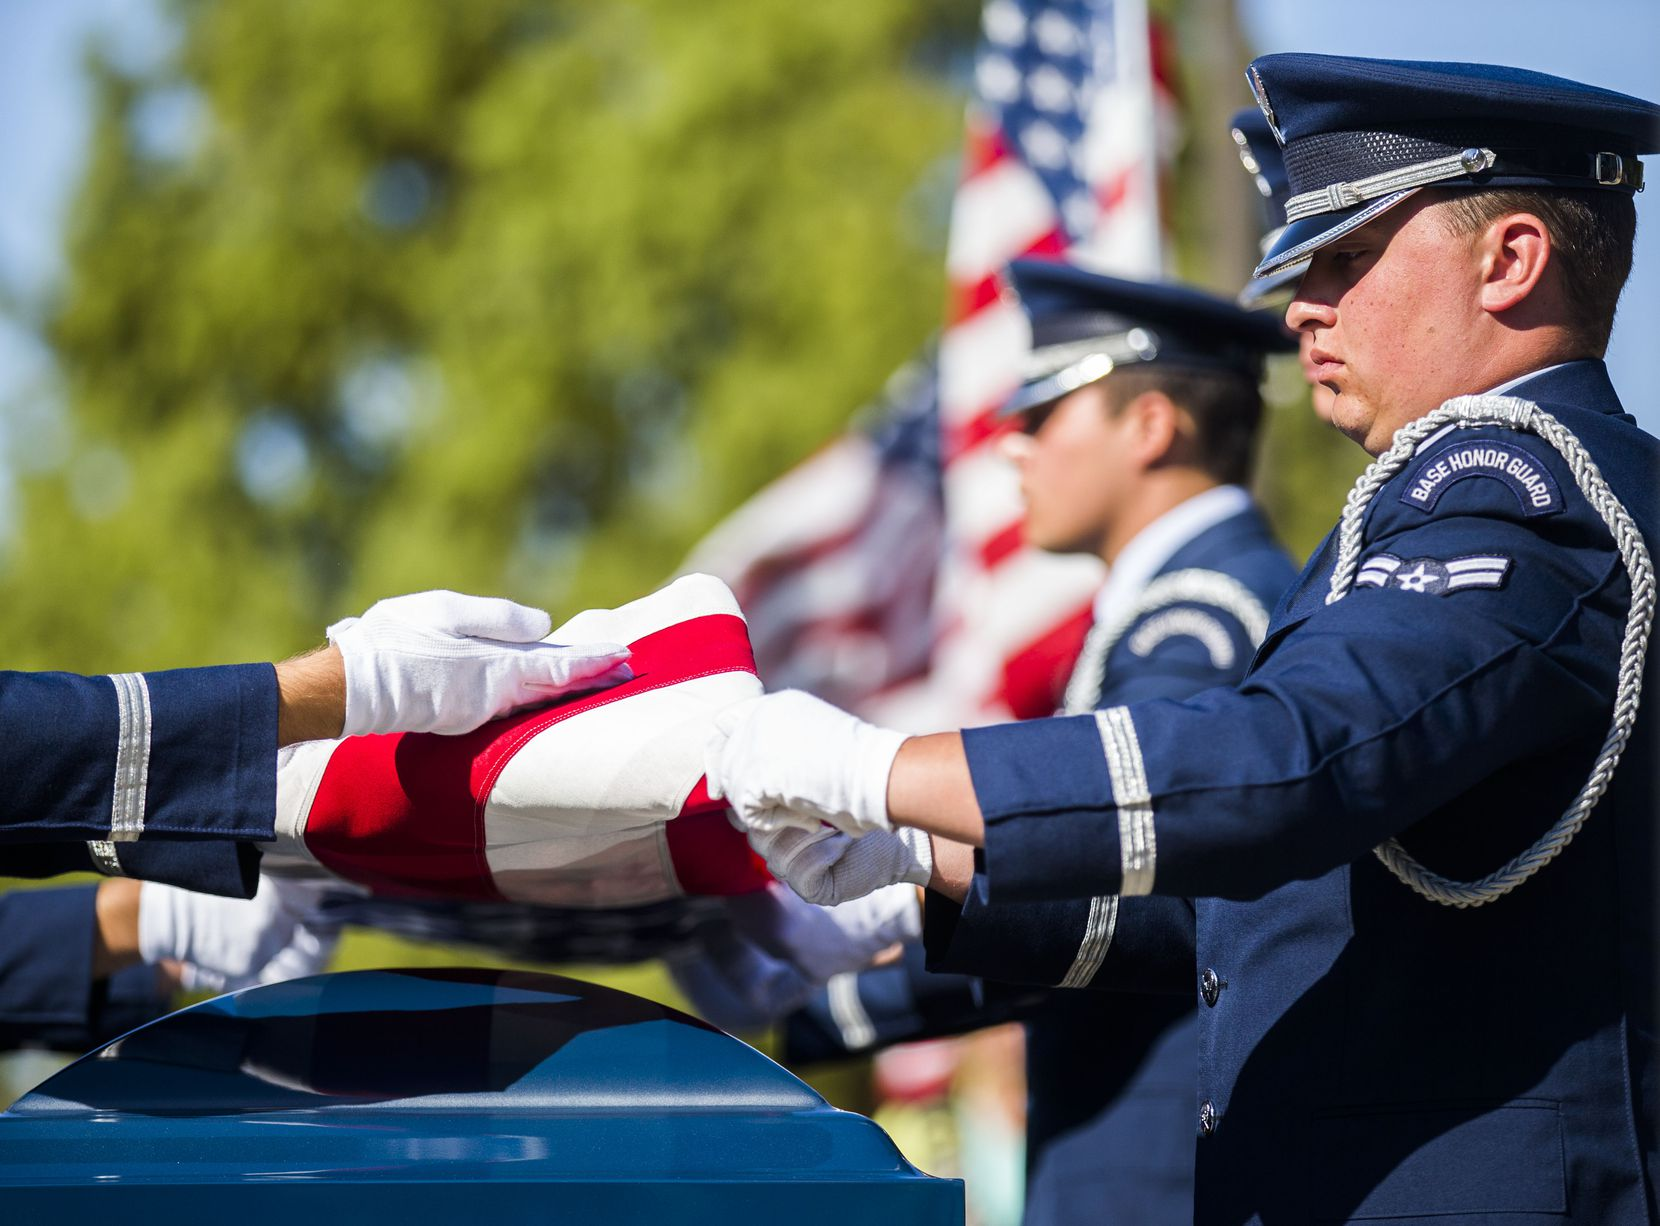 A military honor guard folds an American flag over the remains of retired Army Air Corps 1st Lieutenant Calvin Spann during funeral services  on Saturday, September 12, 2015 at Covenant Church in Carrollton, Texas.  Spann was an original Tuskegee Airman and fighter pilot with the 100th Fighter Squadron of the 332nd Fighter Group.  He served during World War II, when he flew 26 combat missions. (Ashley Landis/The Dallas Morning News)